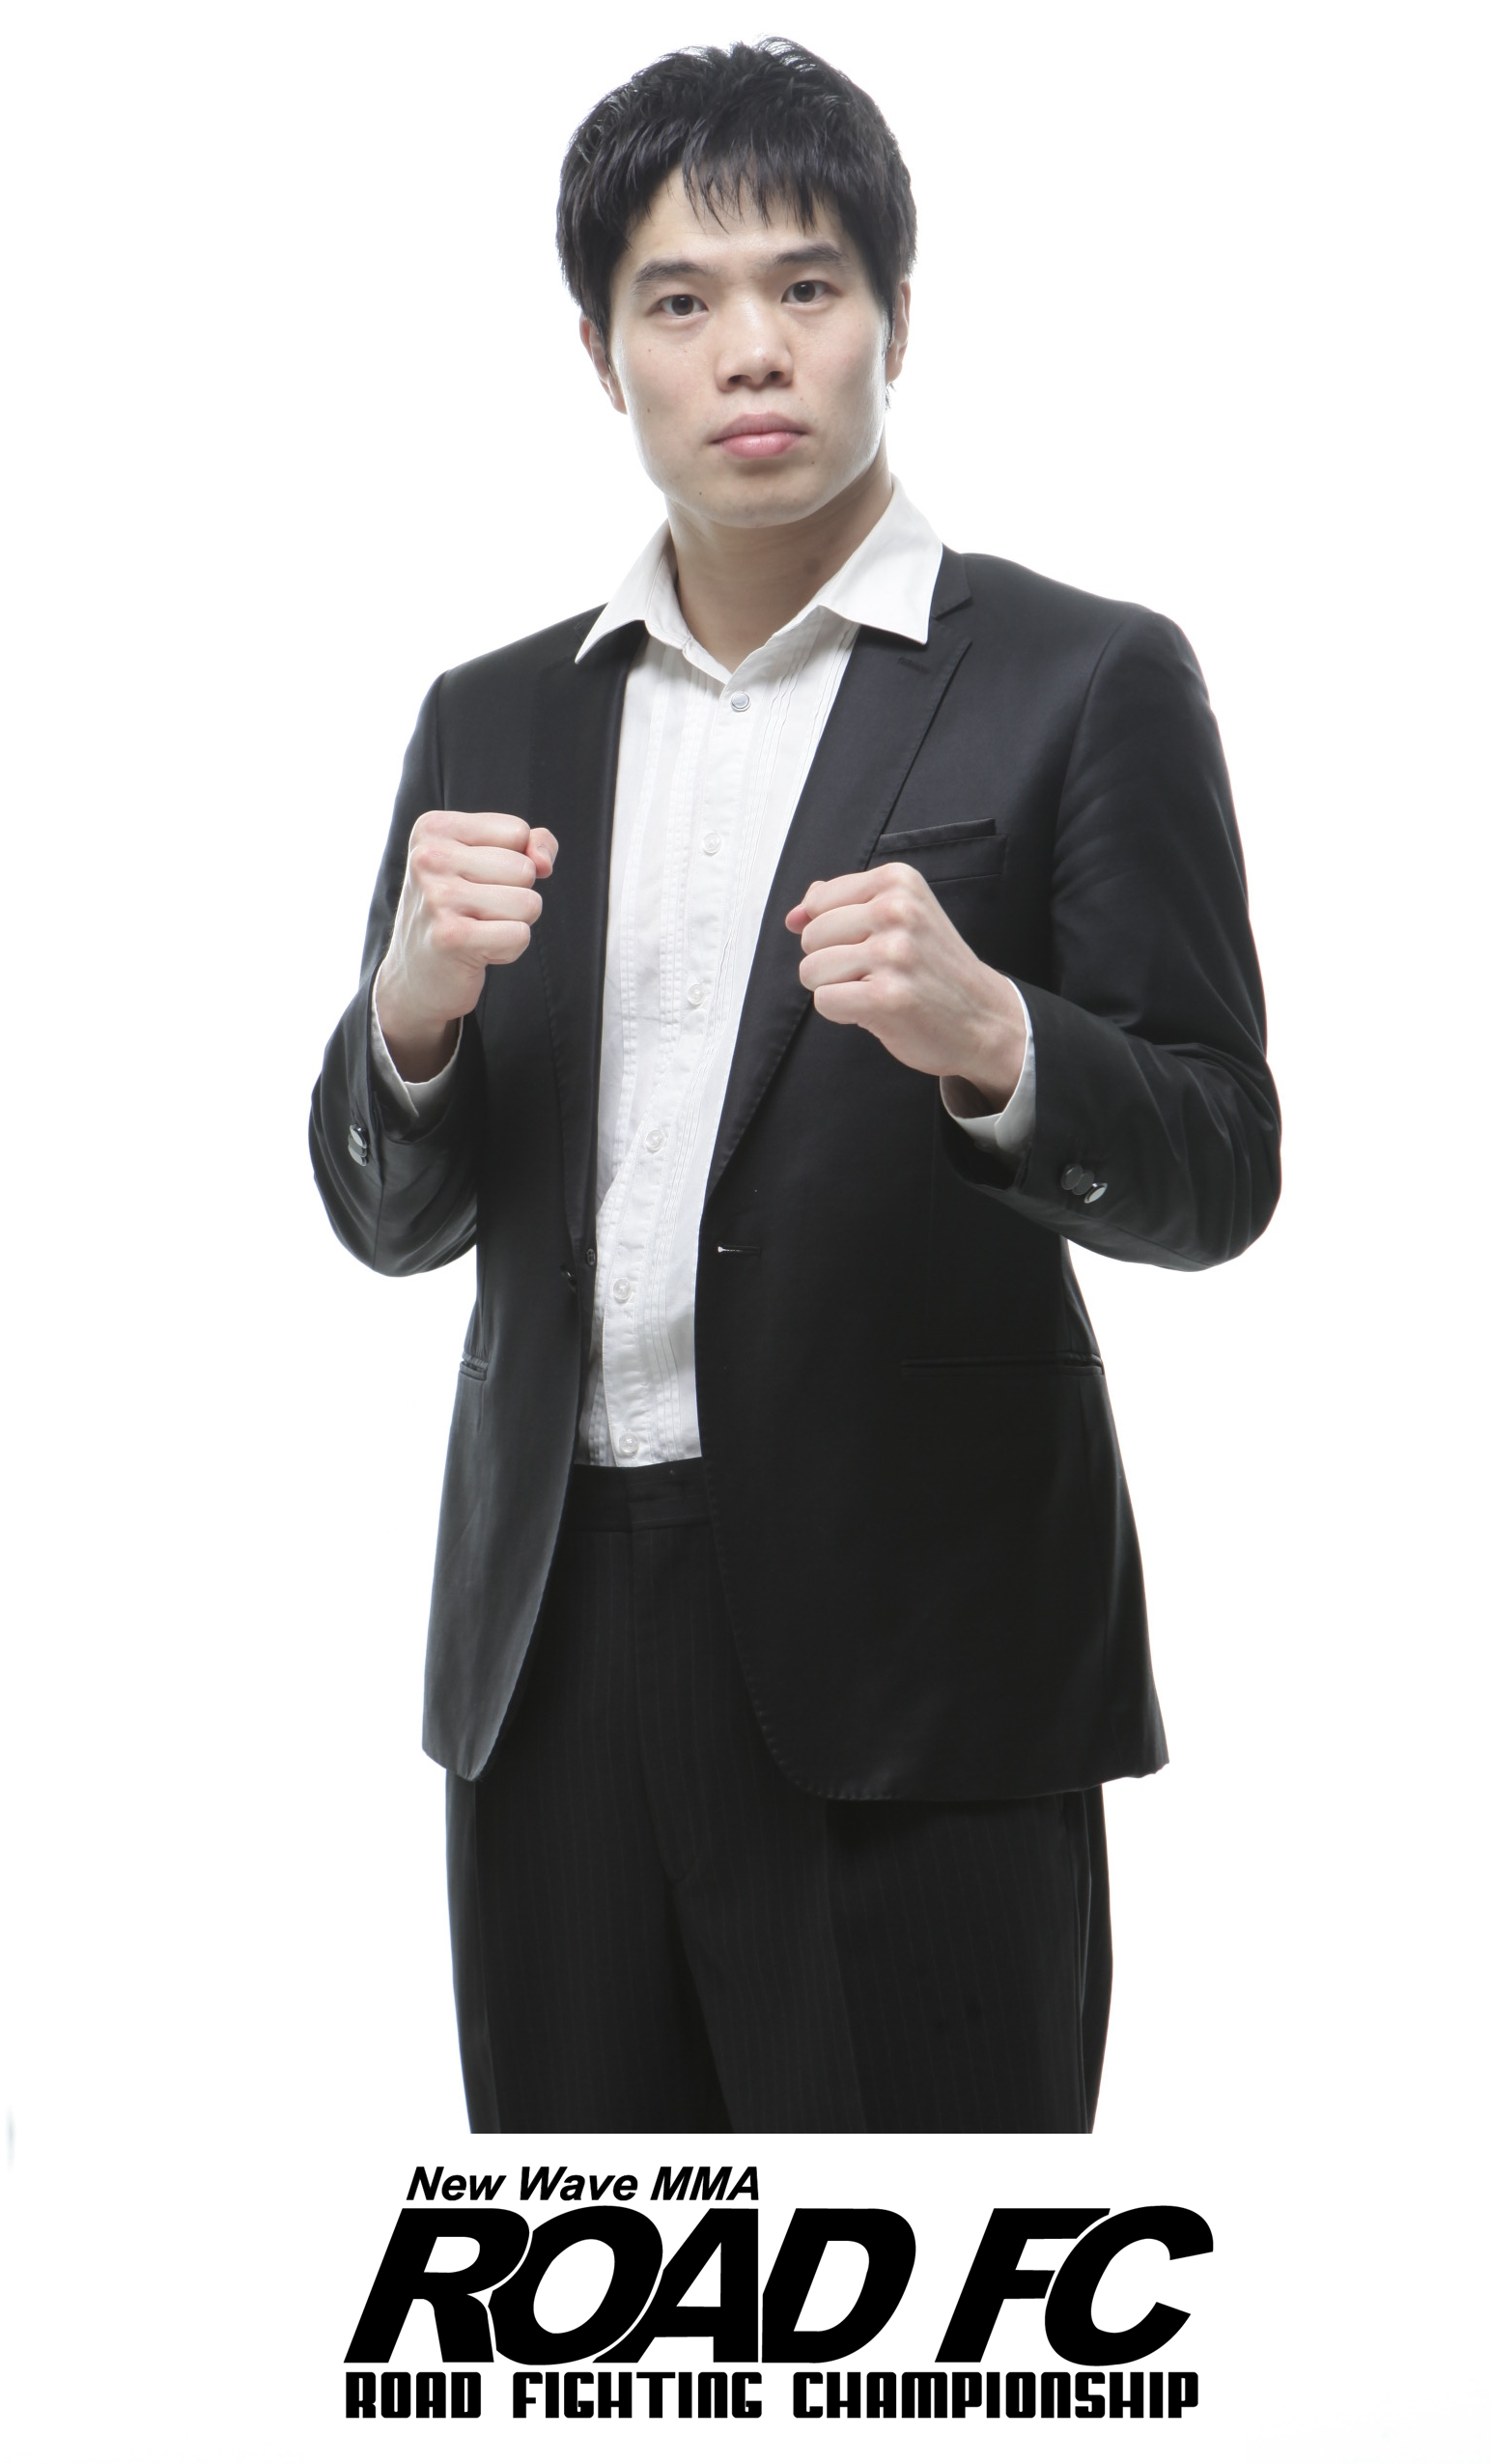 ROAD FC announces the appointment of new CEO Kim Dae-Hwan -